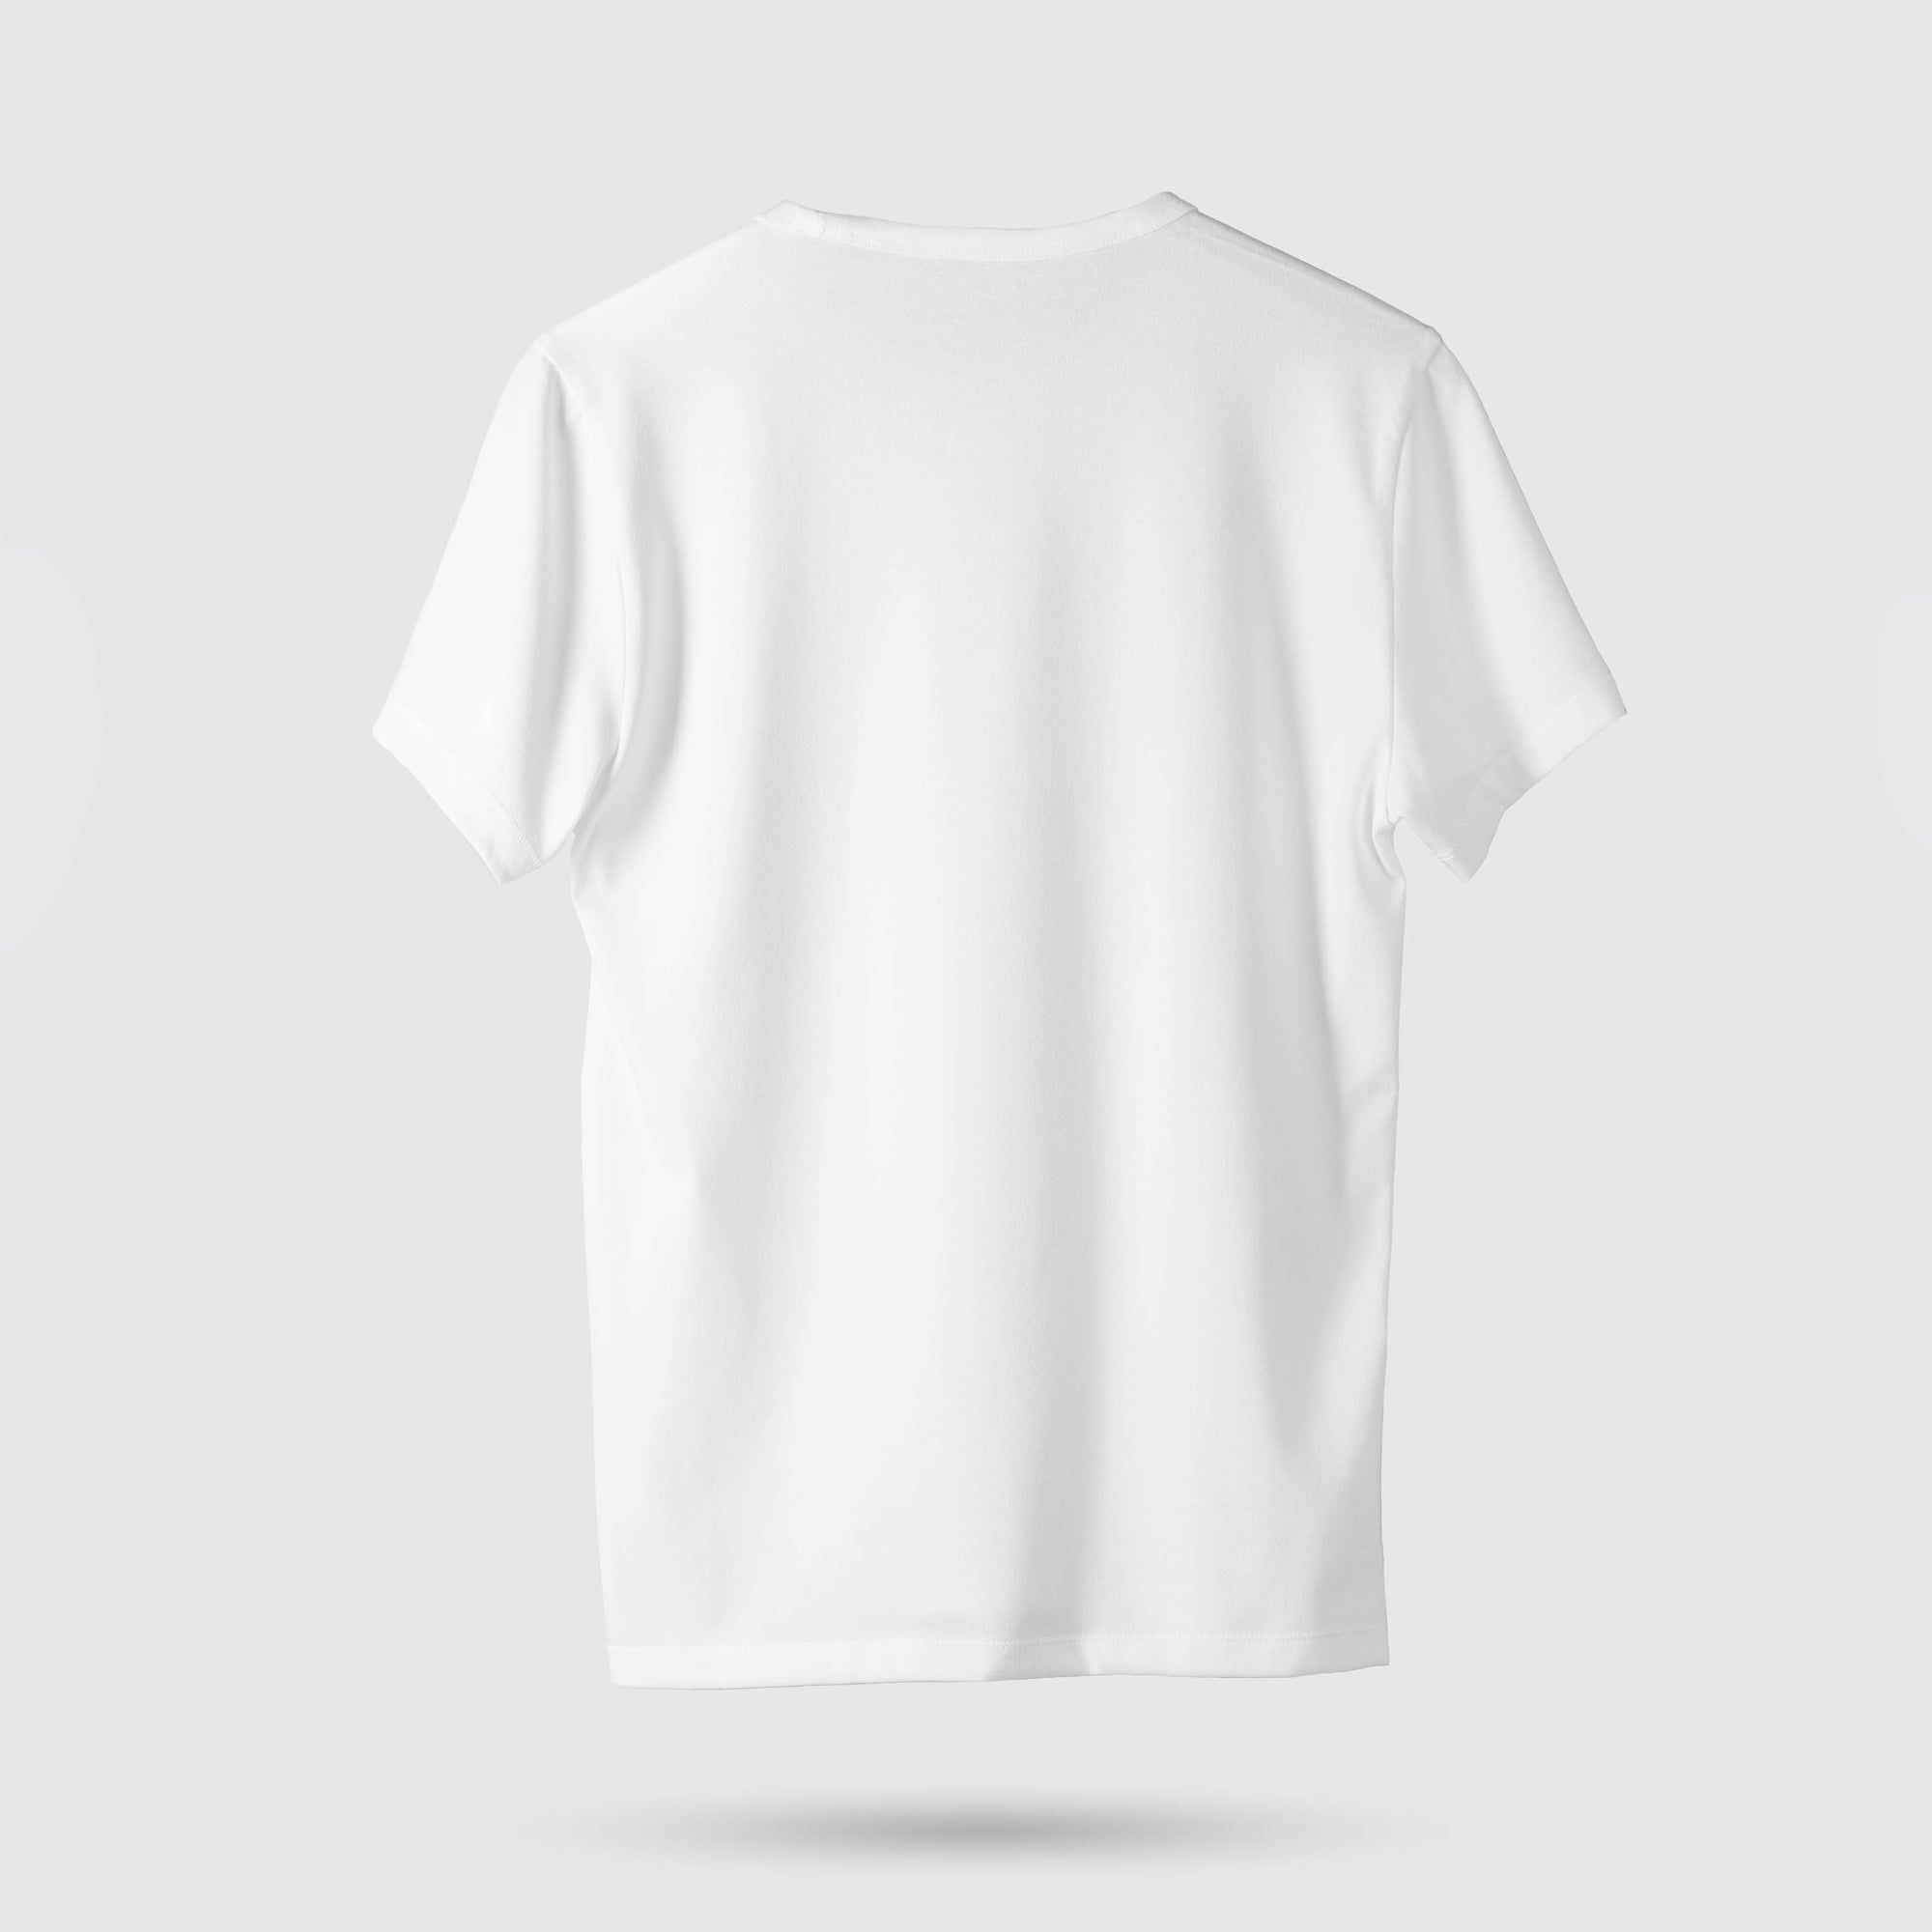 WETZLAR T-SHIRT<BR>WHITE